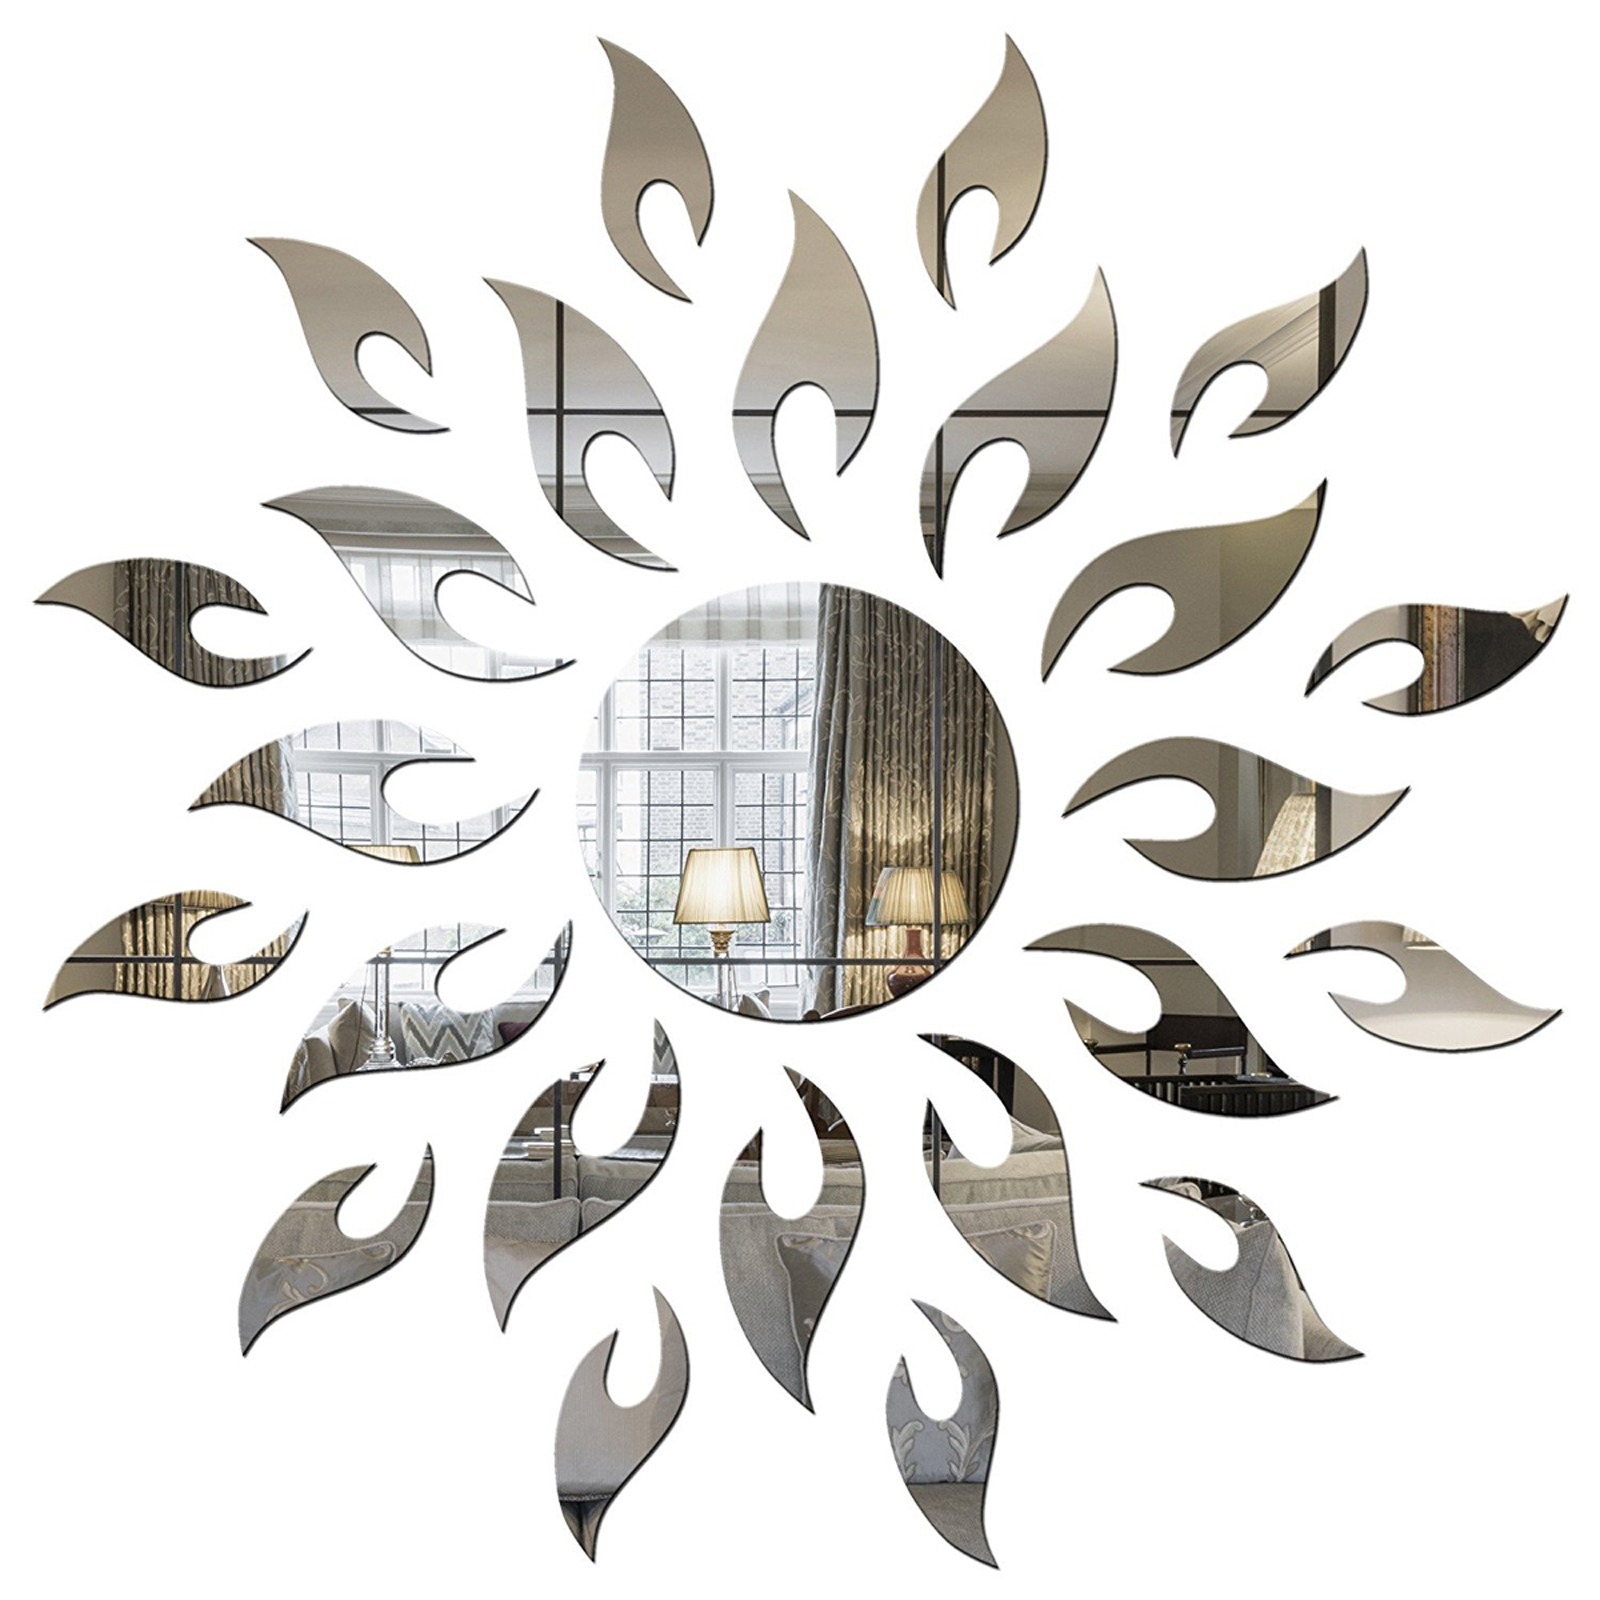 Sun Silver  Size 45 cm x 45 cm  PREMIUM QUALITY 3D Acrylic Mirror wall stickers for home office